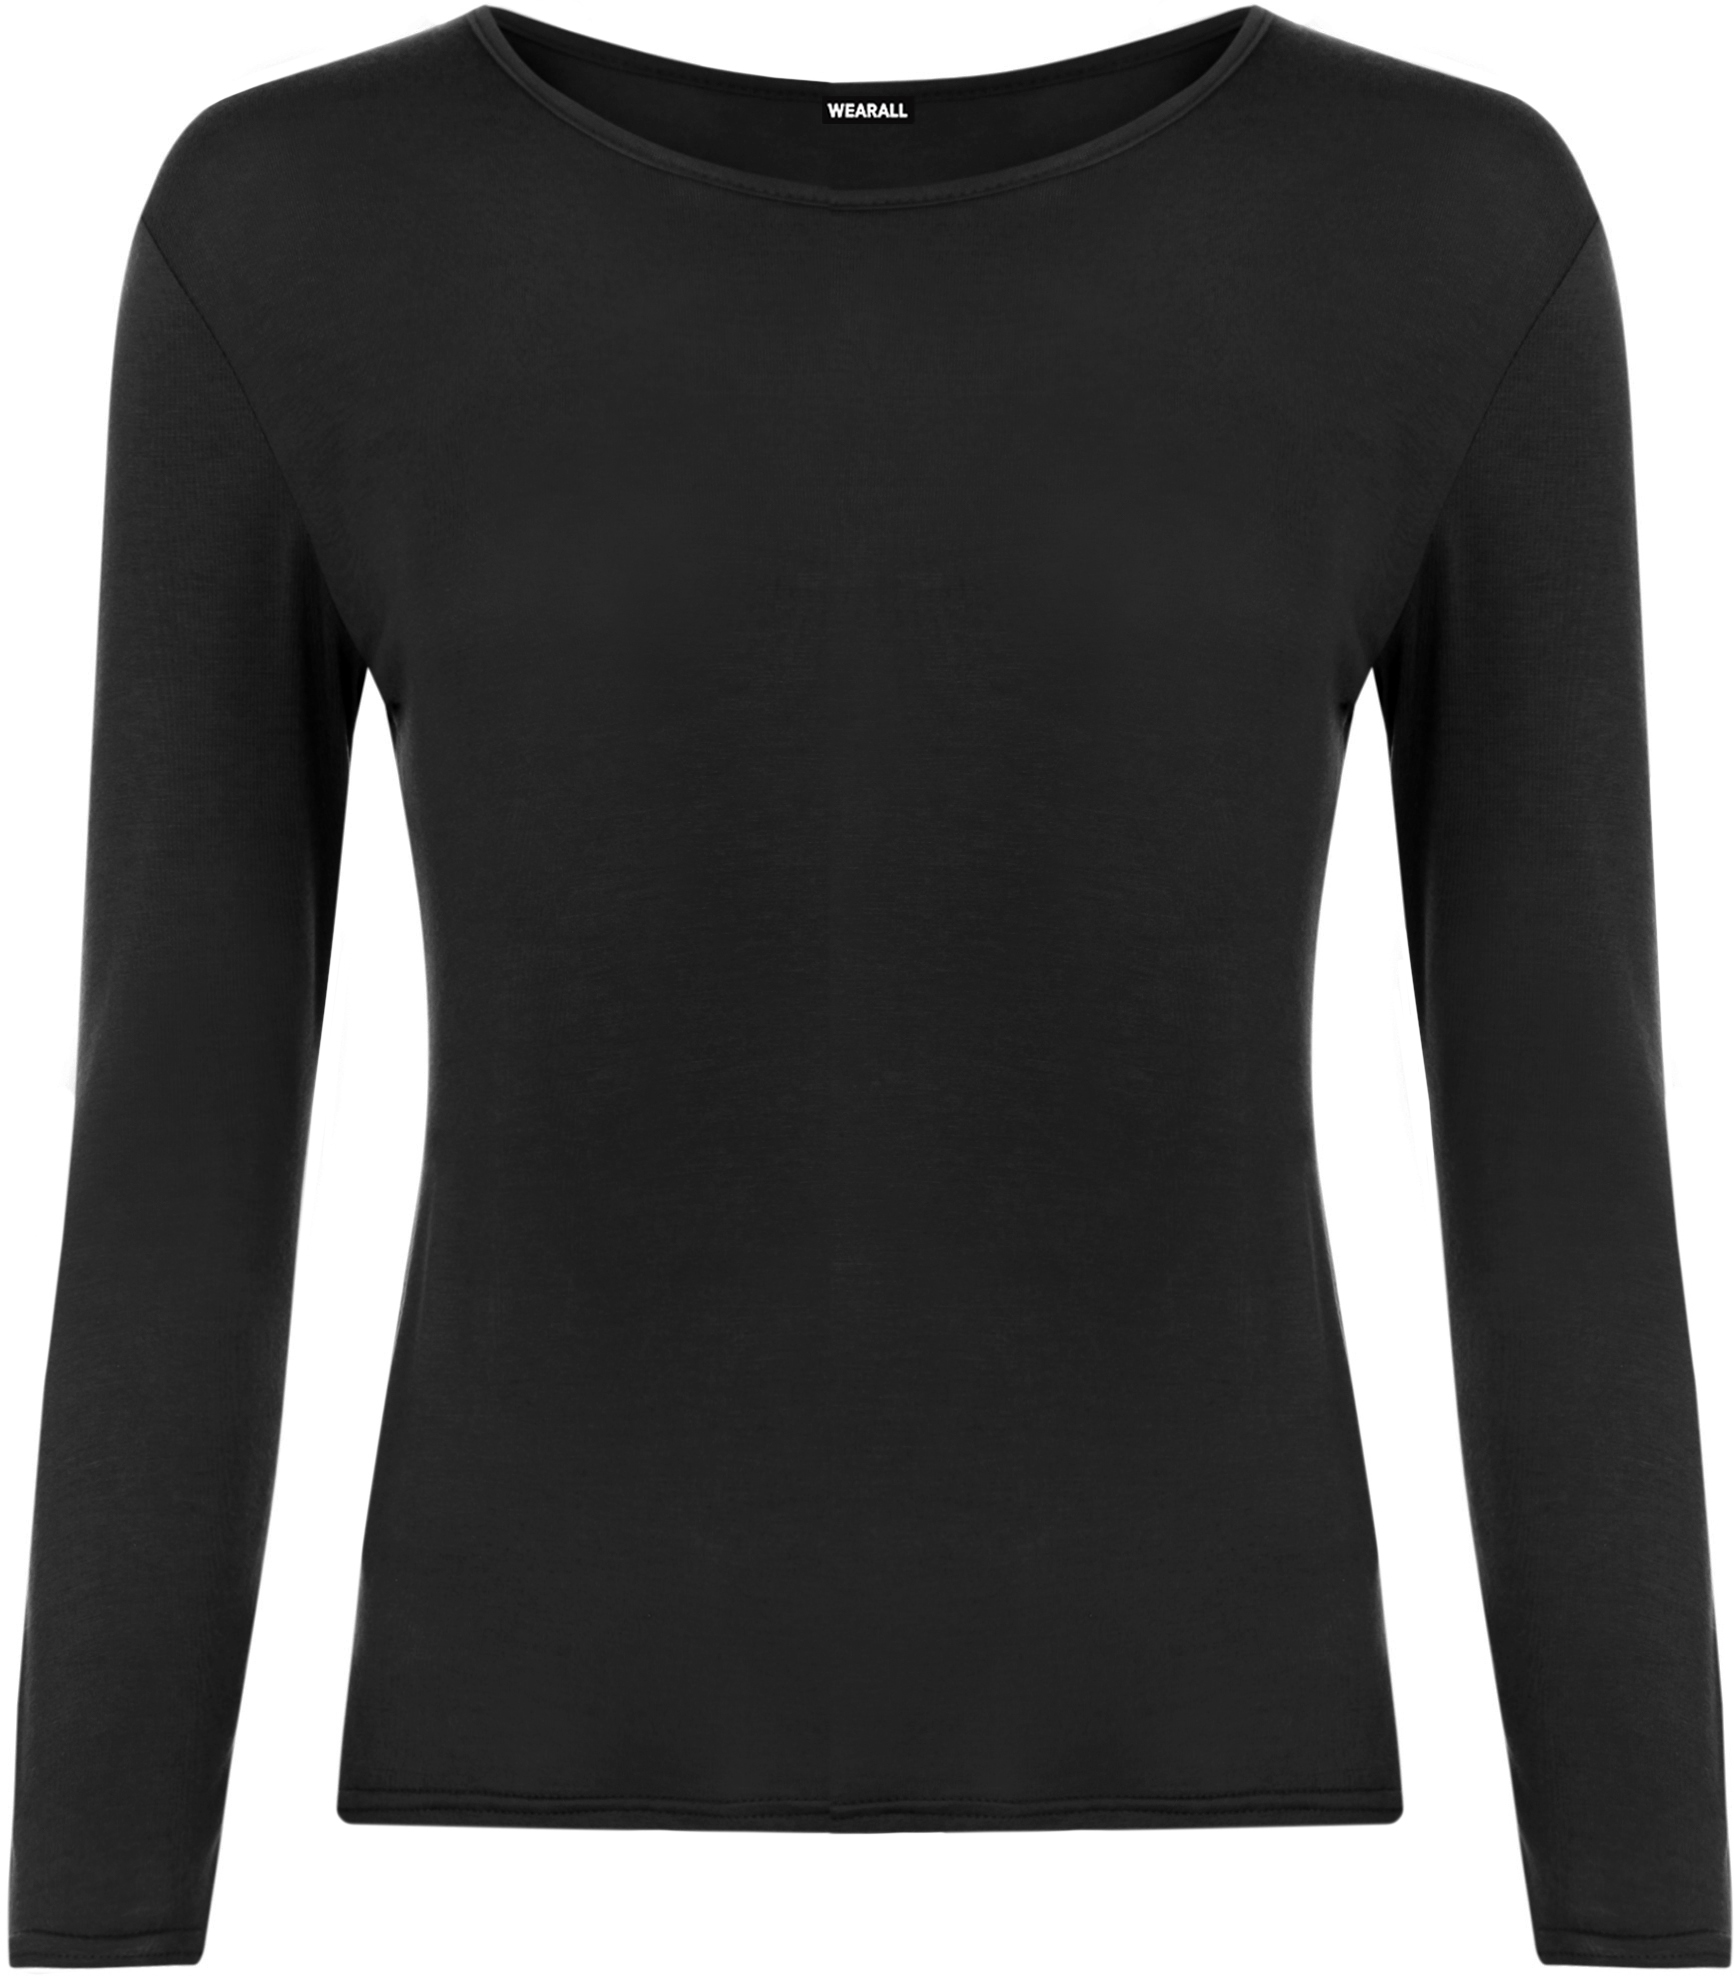 New Womens Long Sleeve Round Neck Plain Basic Ladies